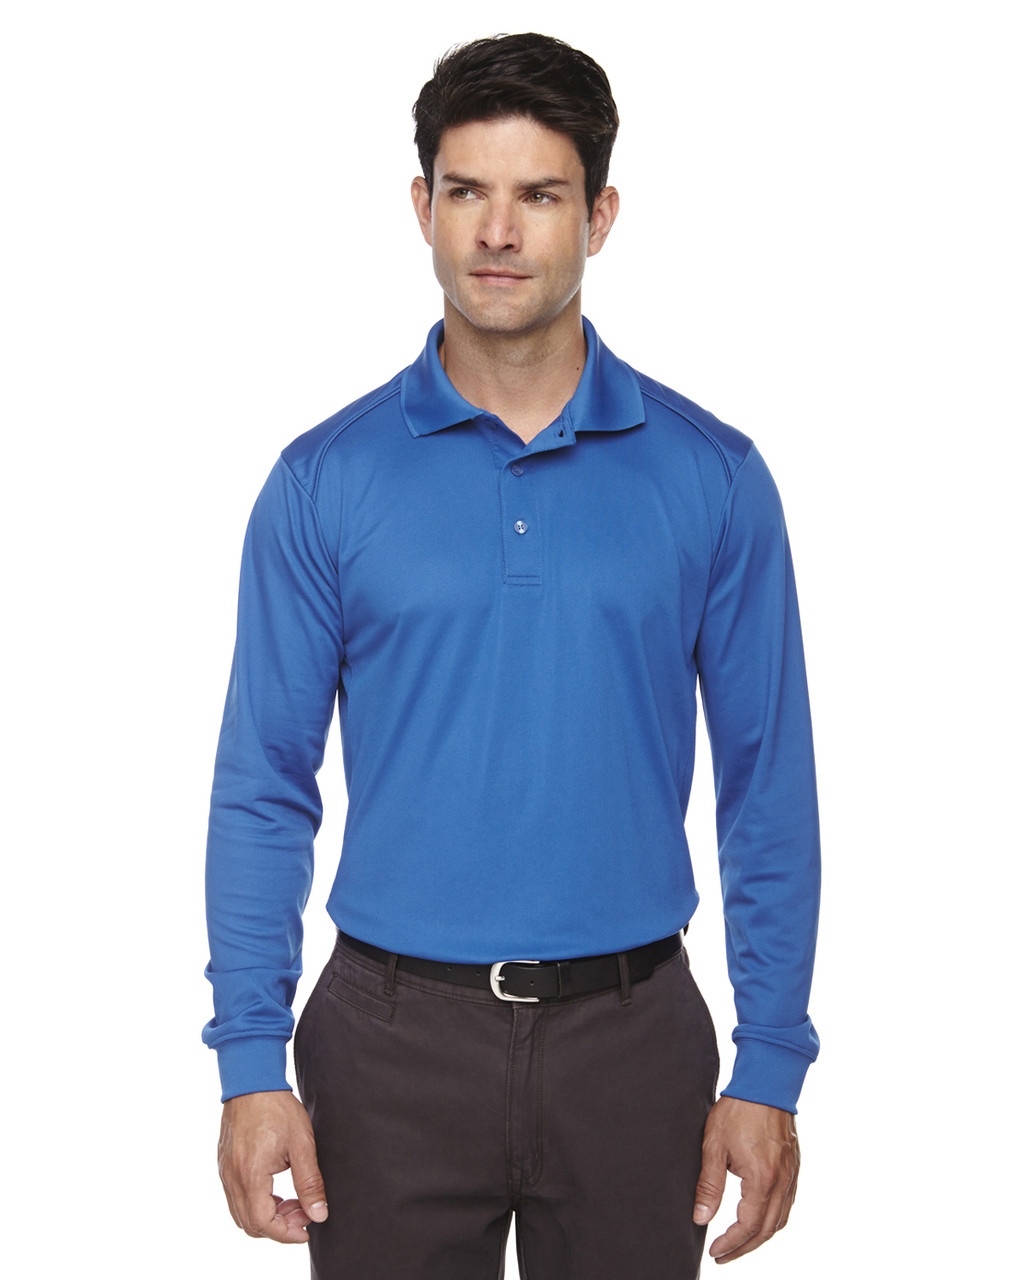 True Royal 85111 Ash City - Extreme Eperformance Men's Long-Sleeve Polo Shirt